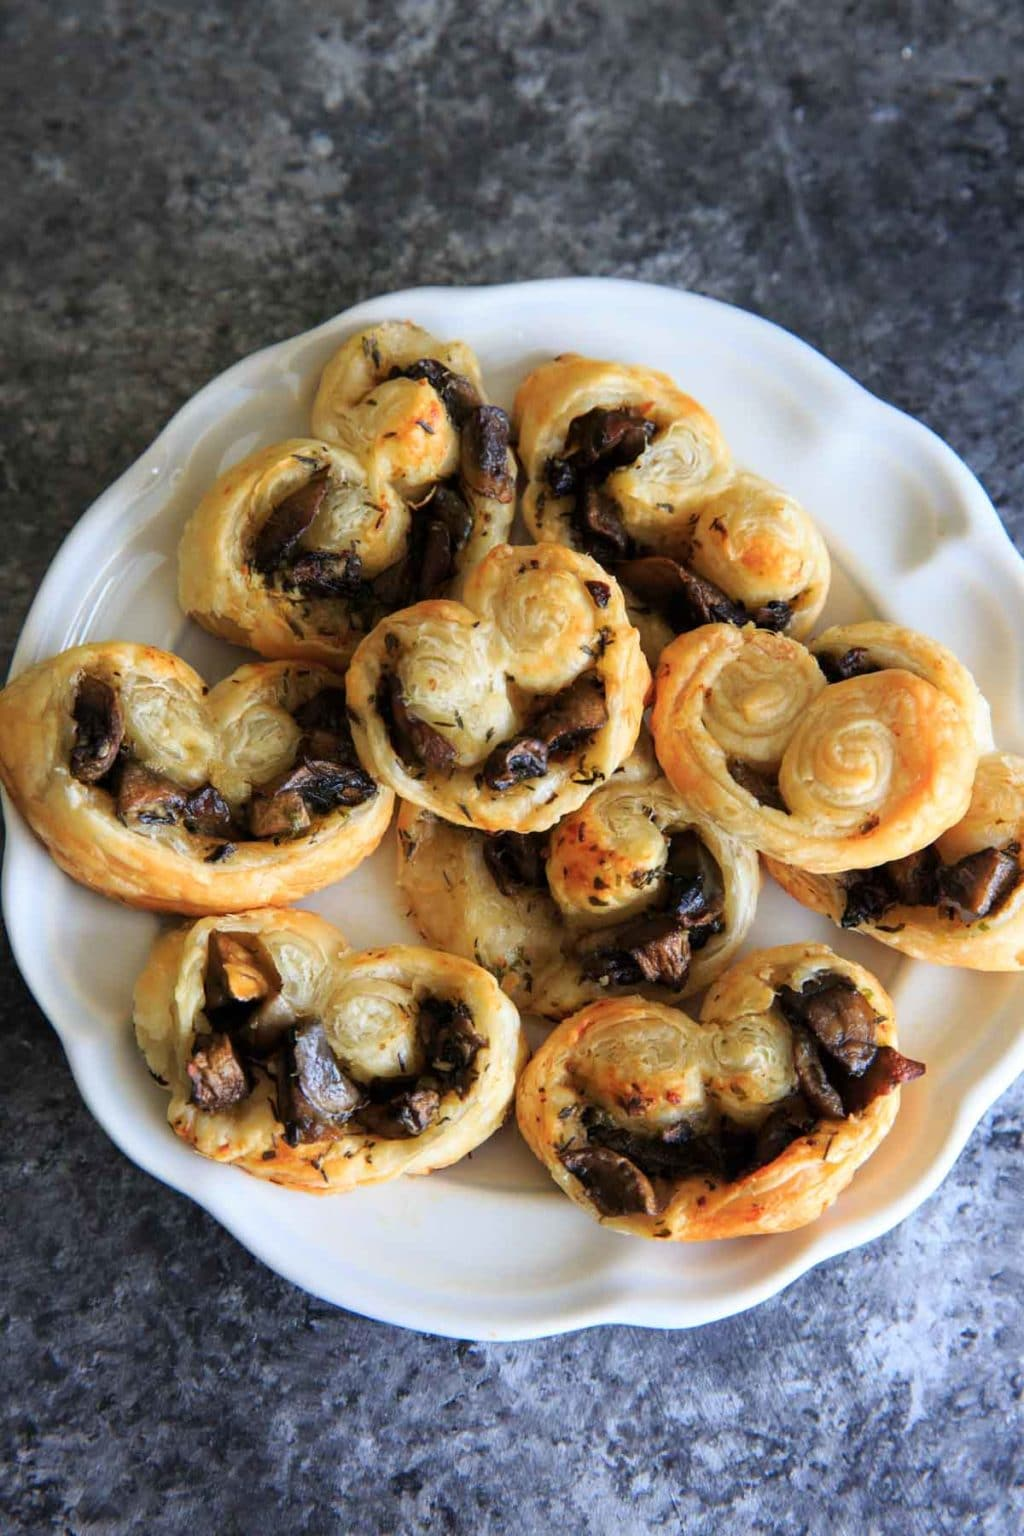 Savory Mushroom Palmiers - a savory version of the puff pastry treat that can be served as a delicious appetizer or side. Especially great for holidays or dinner parties!